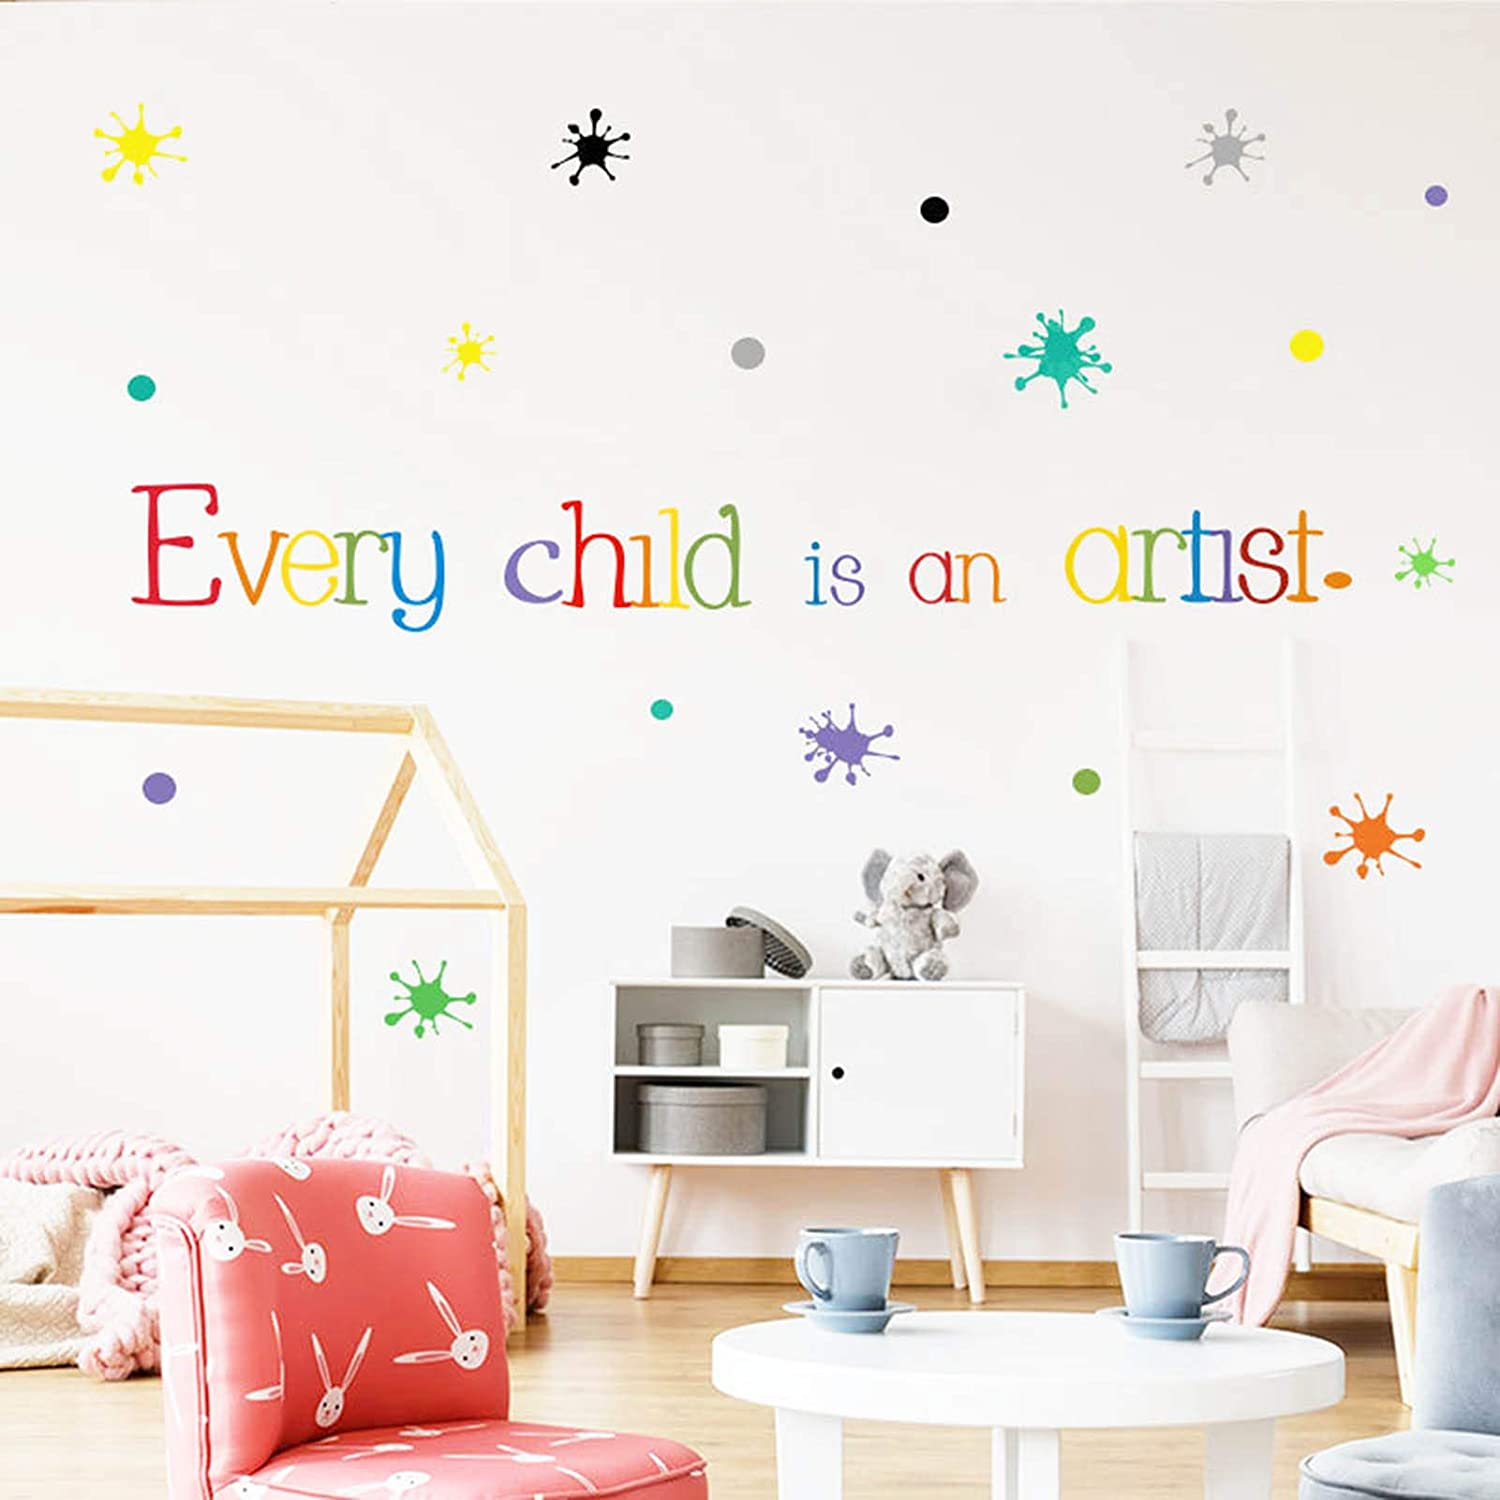 Wall Sticker Decor Decorative-Every Child is an Artist Inspirational Quotes-Watercolor Paint Splash with Dots--Decorations for Living Room Bedroom Playroom Nursery Baby Art Girls Boys Room Decals